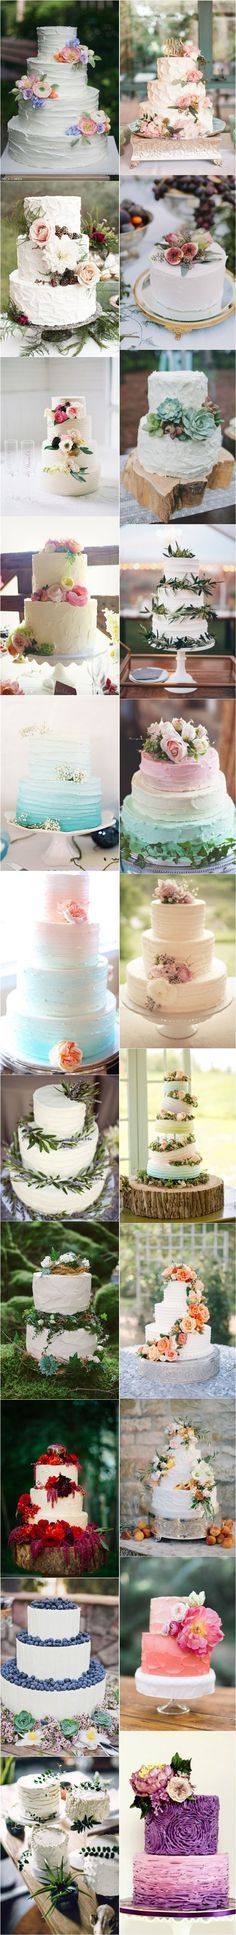 25 Buttercream Wedding Cakes We�d (Almost) Kill For (with Tutorial)   http://www.deerpearlflowers.com/25-buttercream-wedding-cakes-wed-almost-kill-for-with-tutorial/